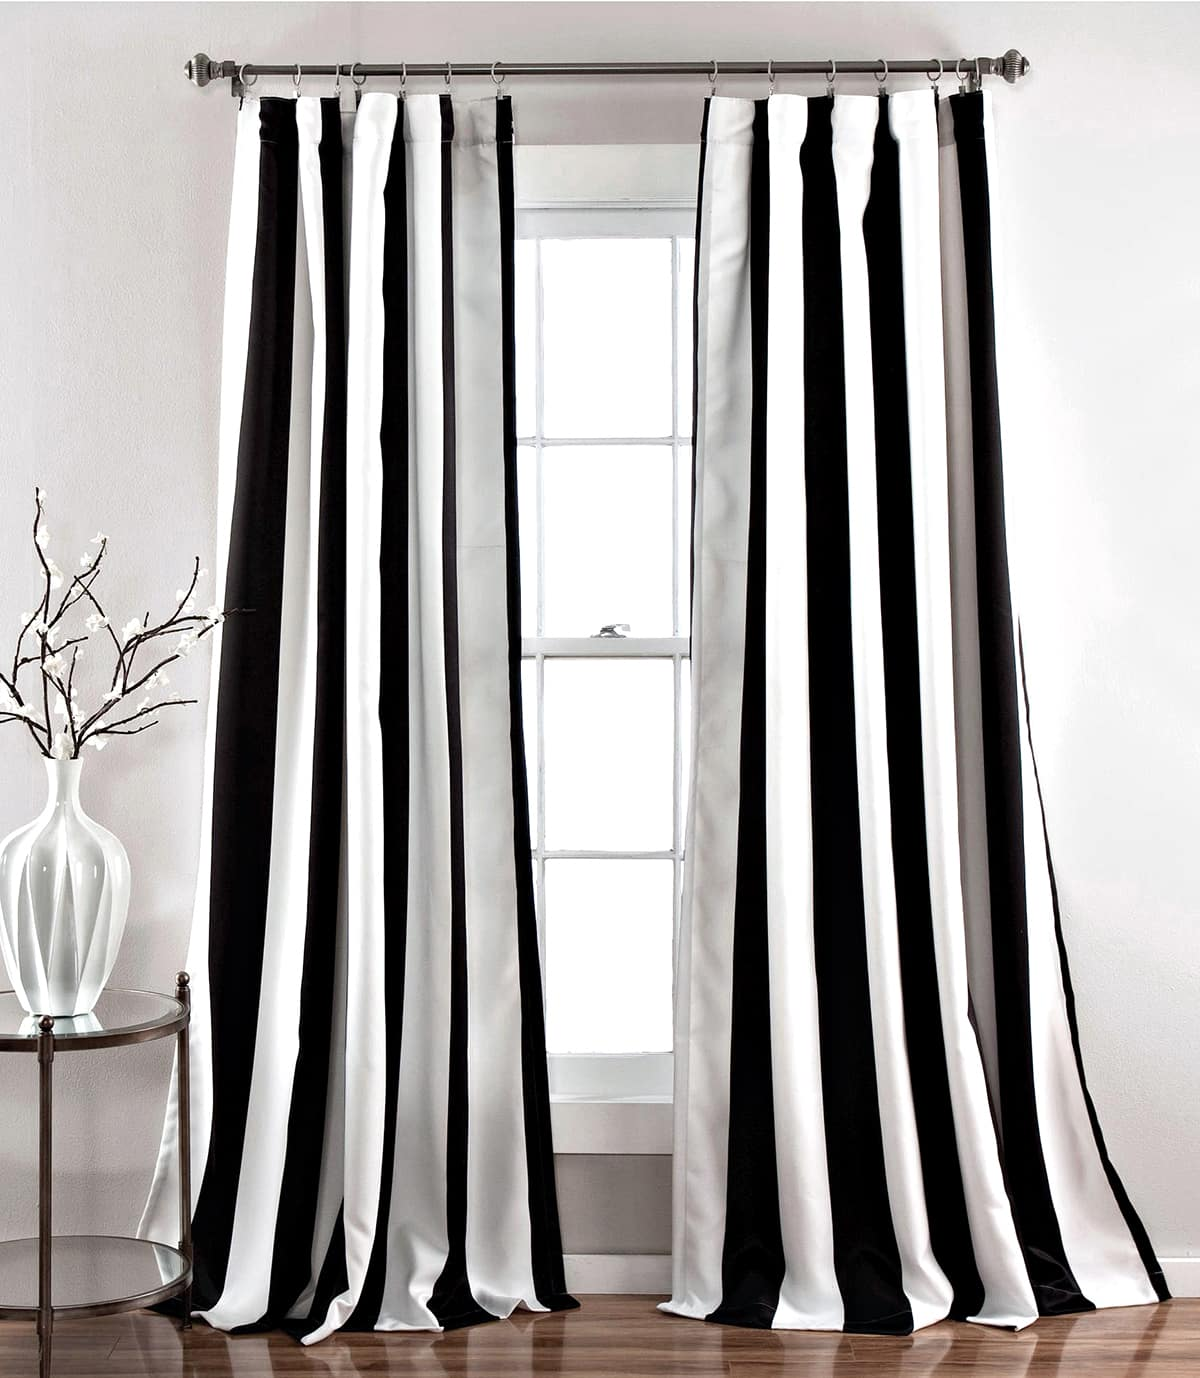 My favorite black and white curtains cuckoo4design Black and white striped curtains